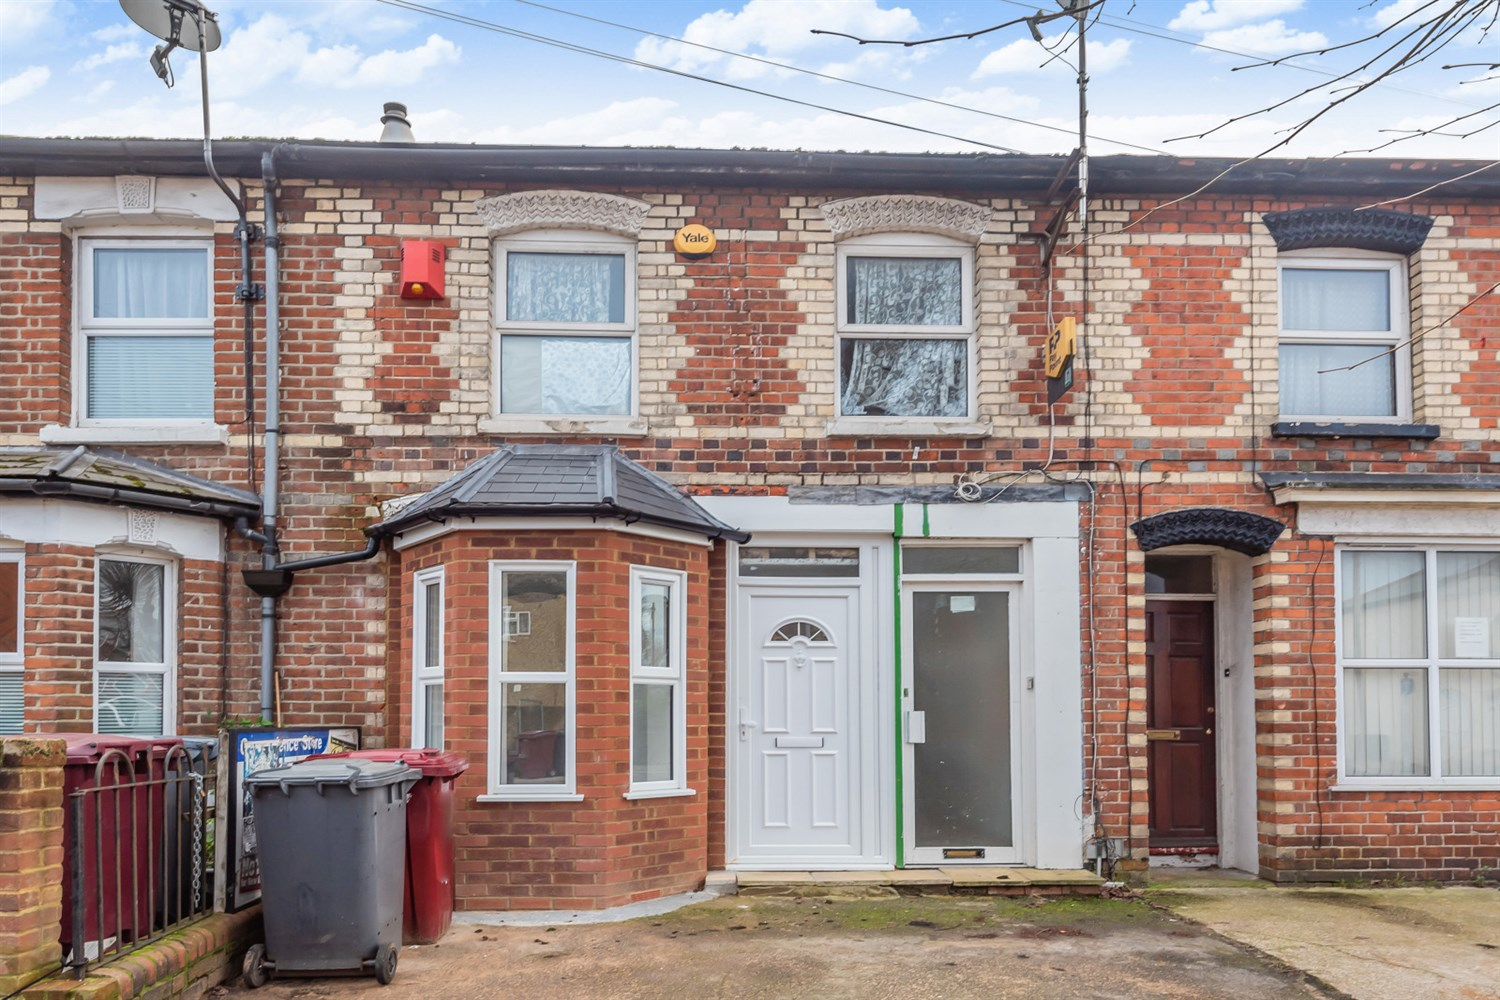 35 Prince Of Wales Avenue, Reading, RG30 2UH